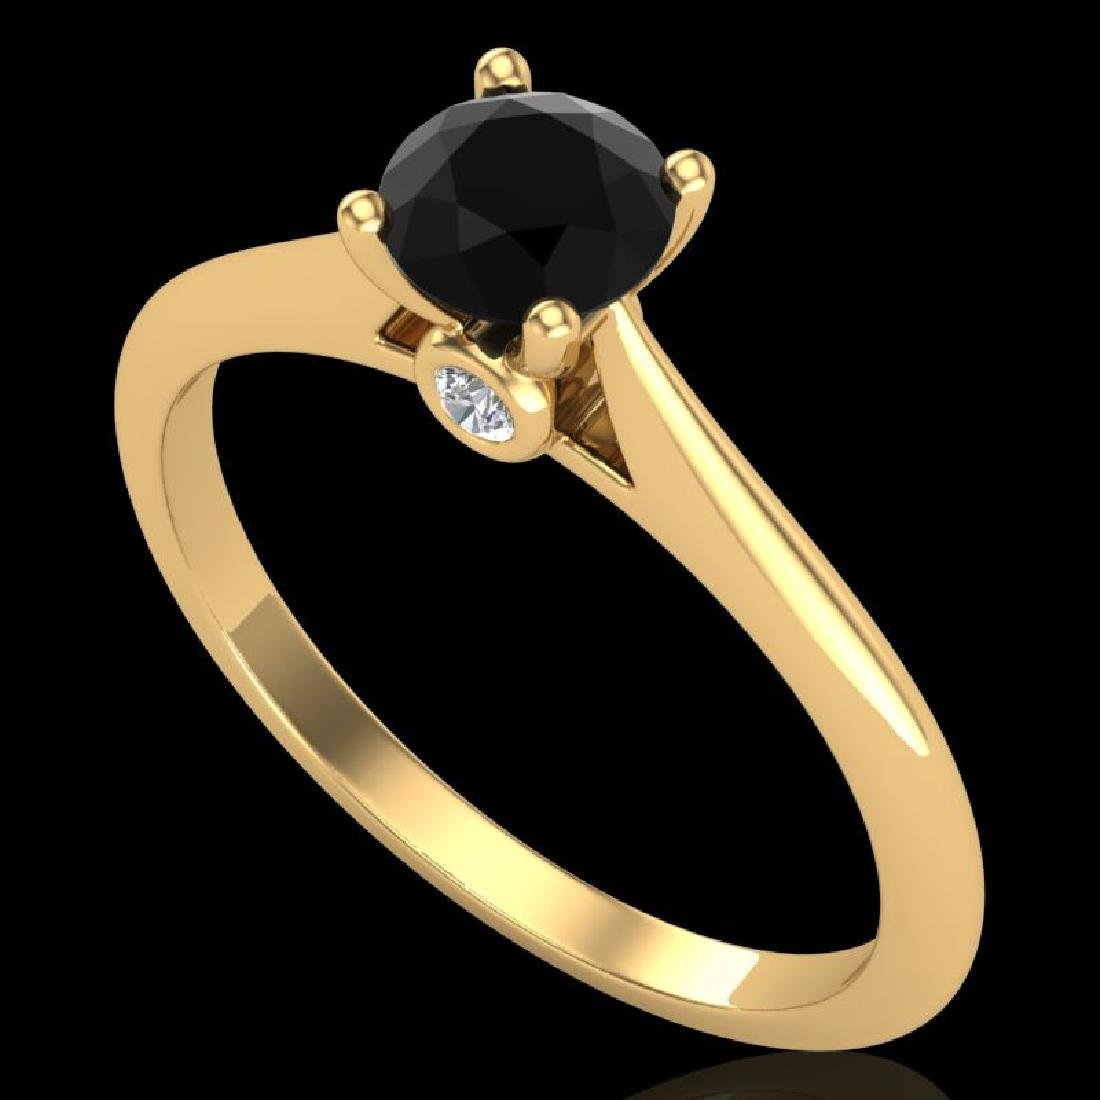 0.56 CTW Fancy Black Diamond Solitaire Engagement Art